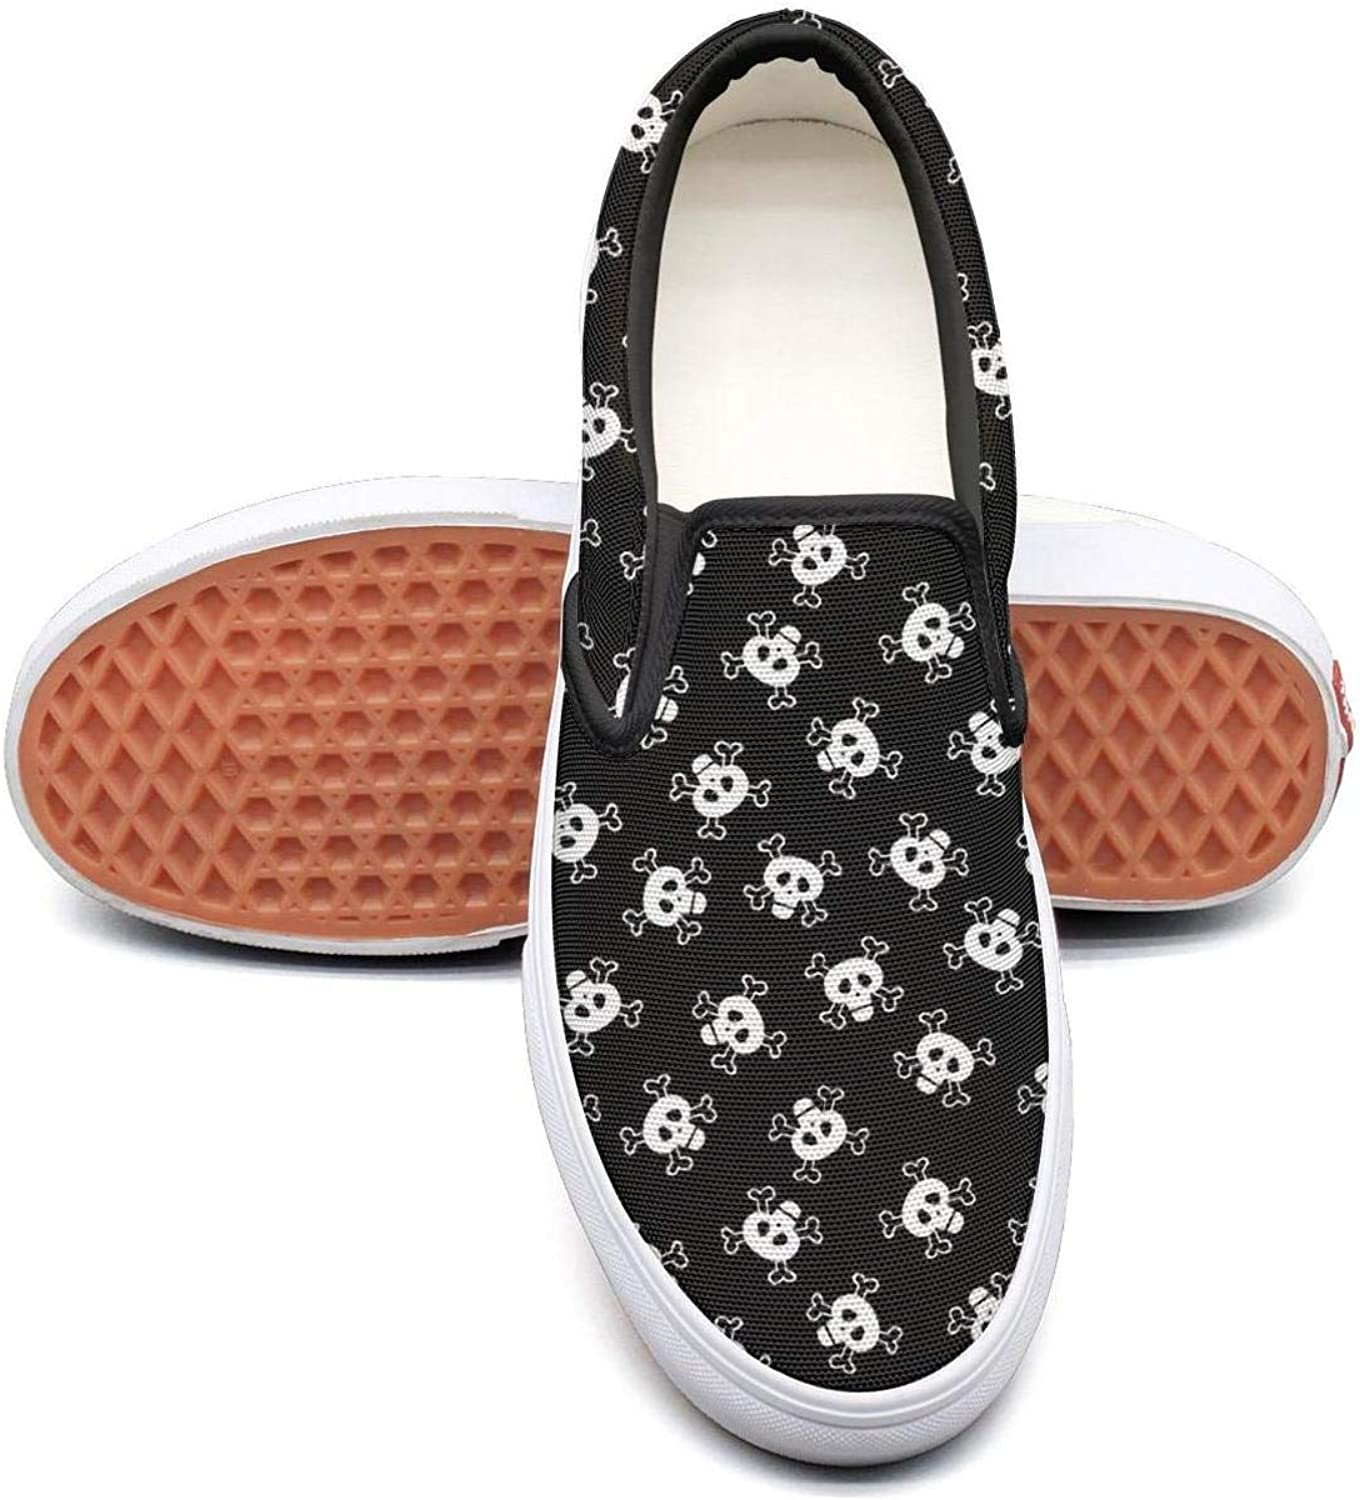 Skulls Fun Halloween Slip On Rubber Sole Sneakers Canvas shoes for Women Round Toe